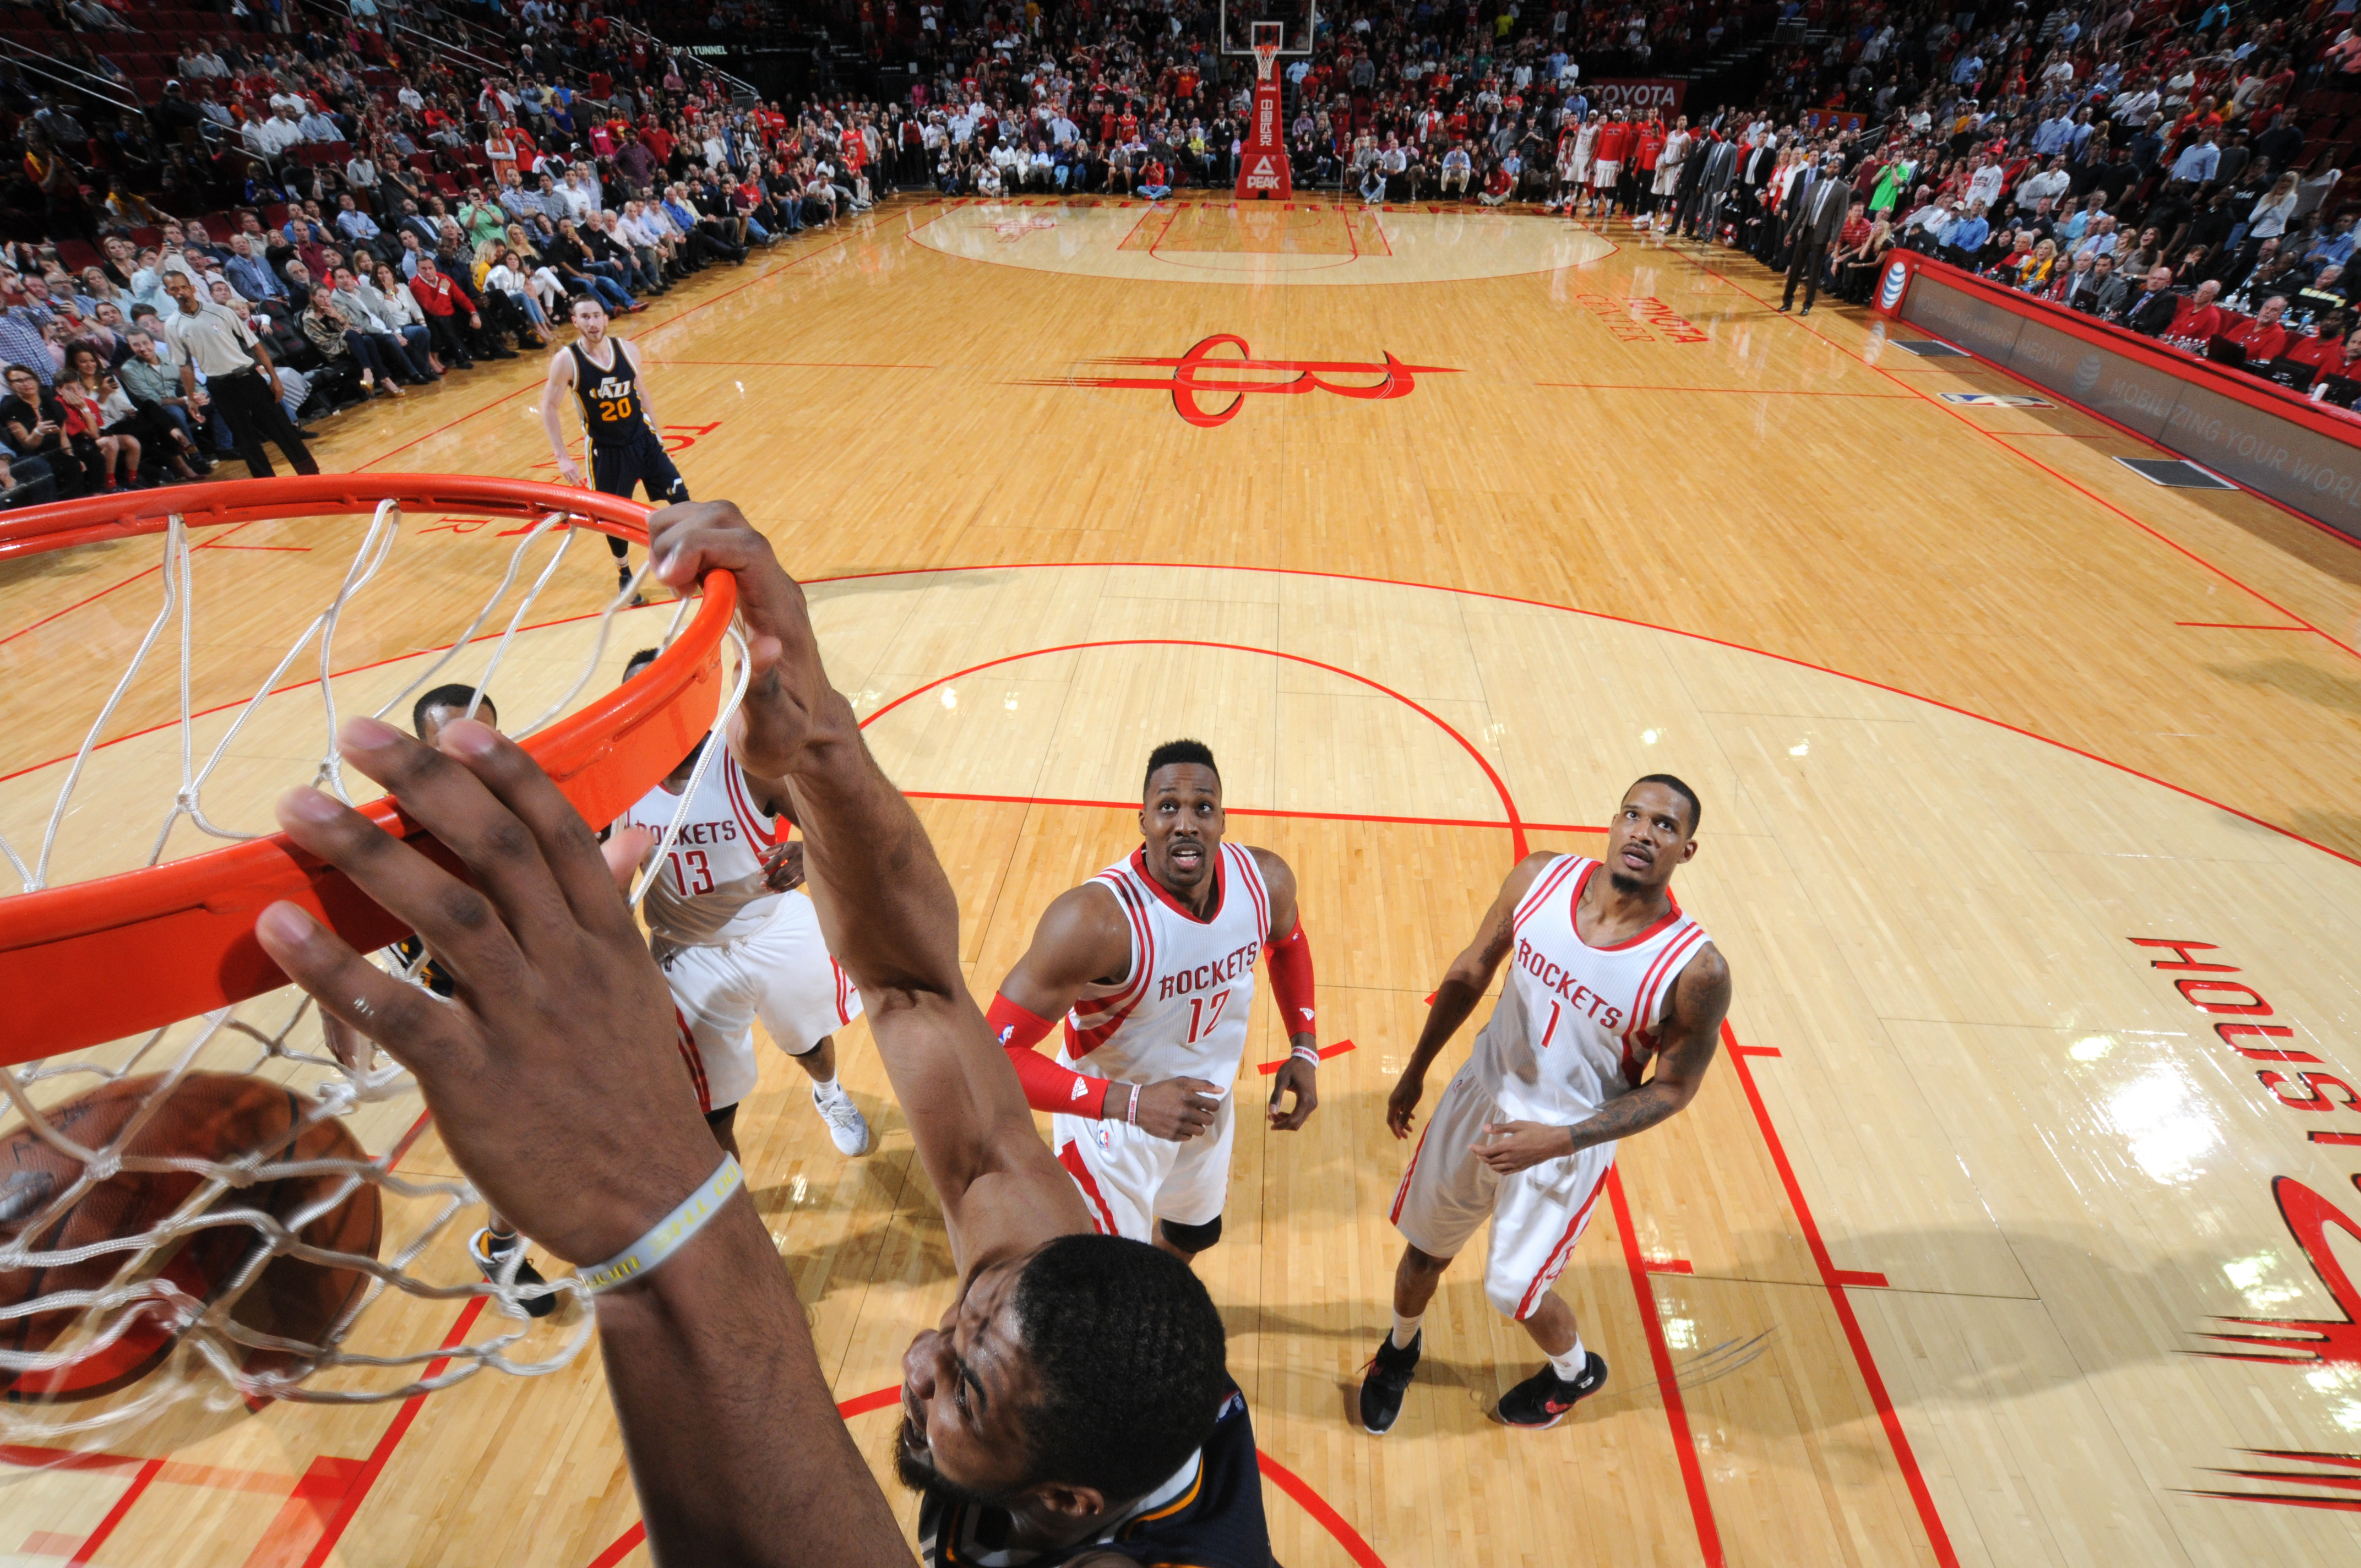 HOUSTON, TX - MARCH 23:  Derrick Favors #15 of the Utah Jazz dunks for the game winning basket against the Houston Rockets on March 23, 2016 at the Toyota Center in Houston, Texas. (Photo by Bill Baptist/NBAE via Getty Images)